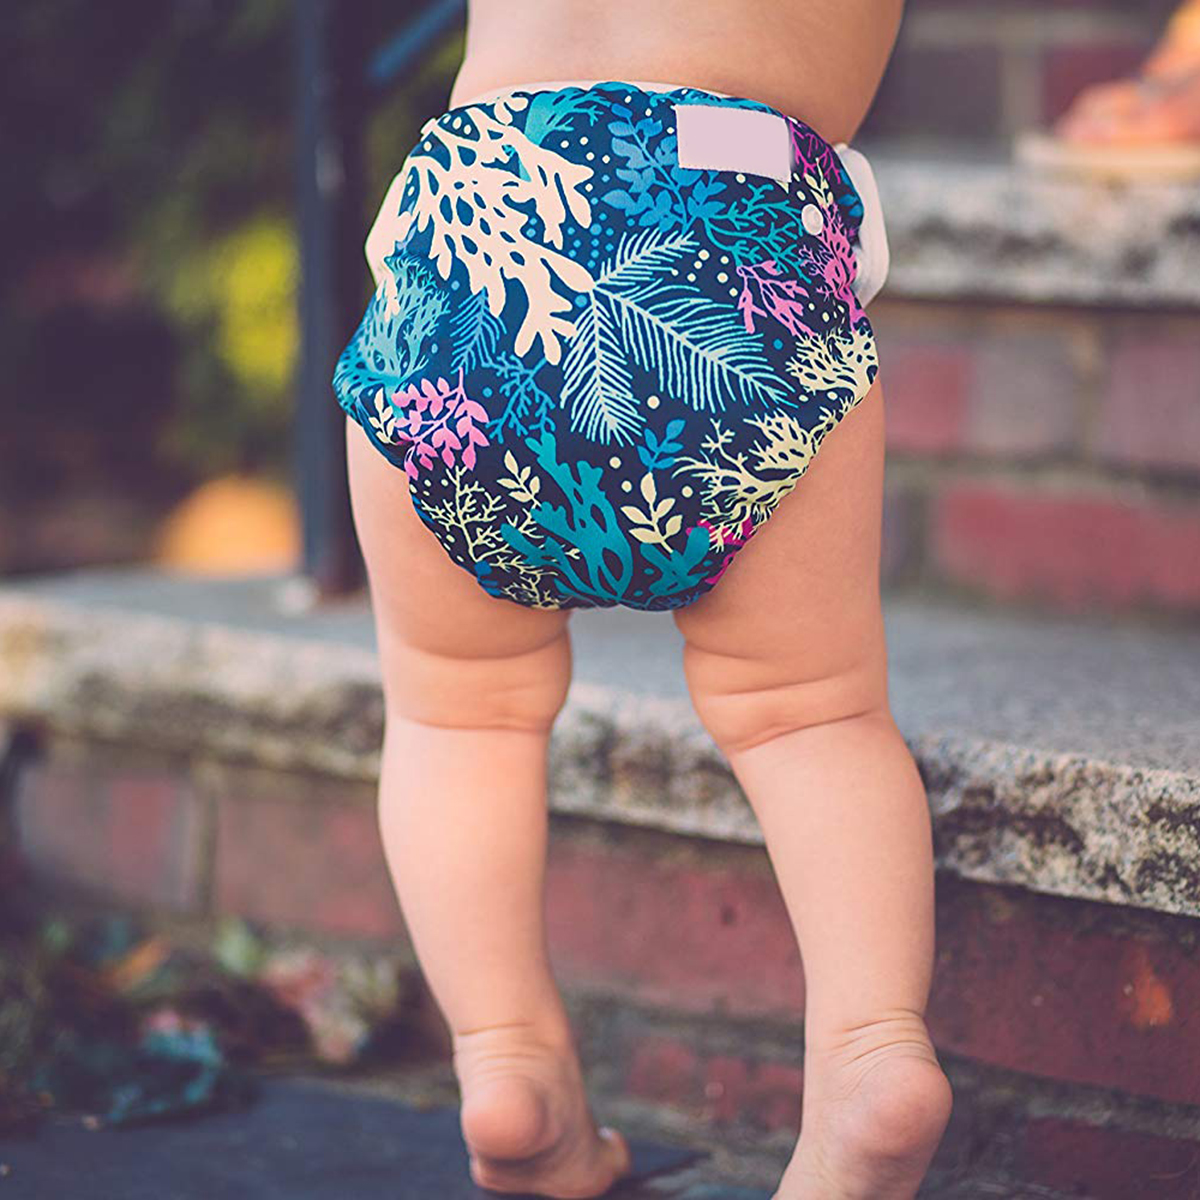 Puseky infant 1pcs 3 layers microfiber diaper nappy insert super absorbent 35x13.5cm fit baby cloth pocket diaper